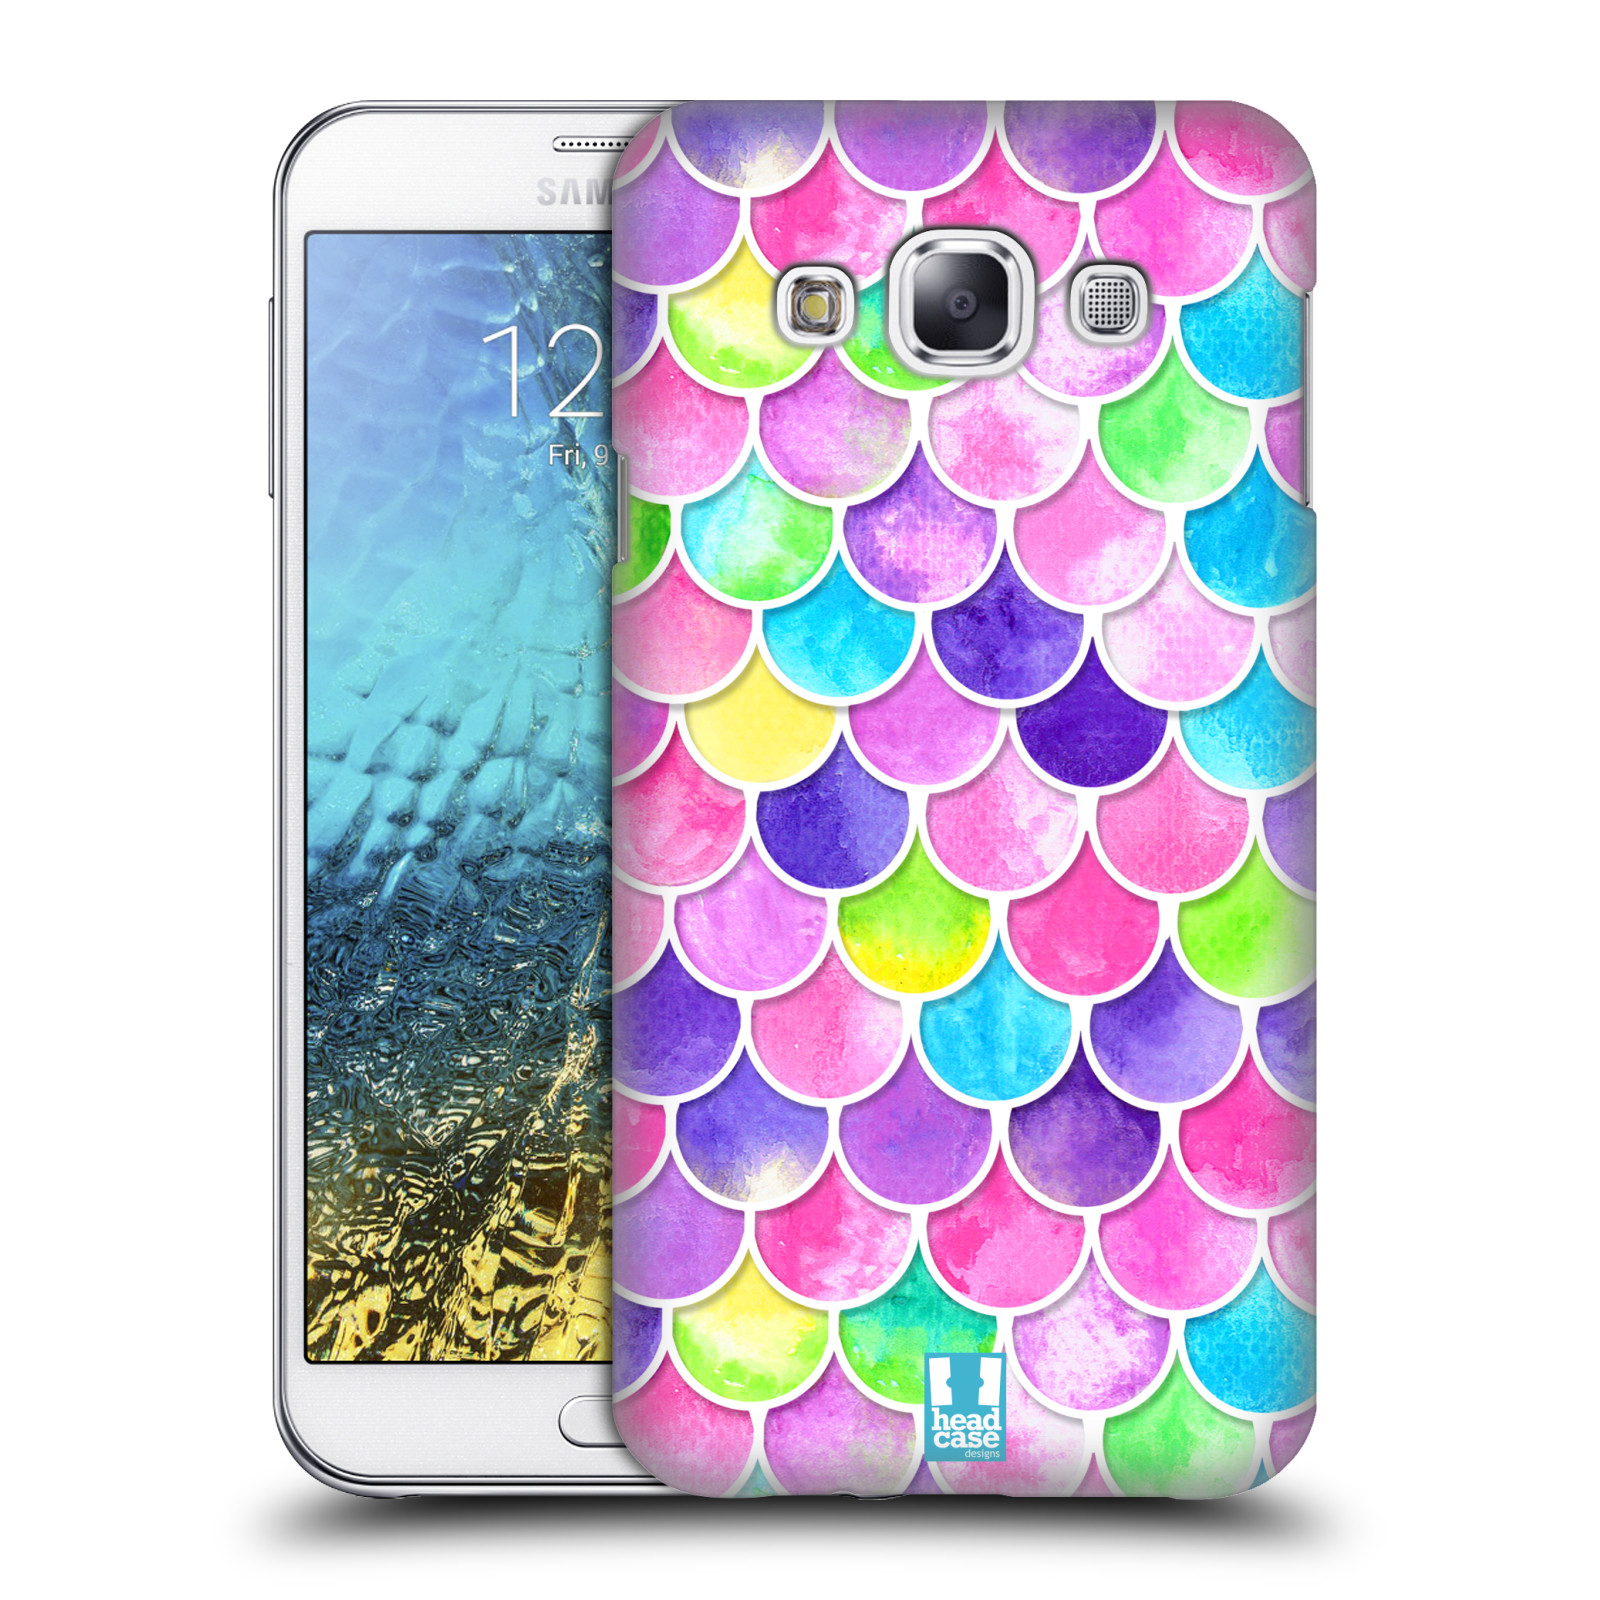 Head case designs mermaid scales hard back case for for Case design